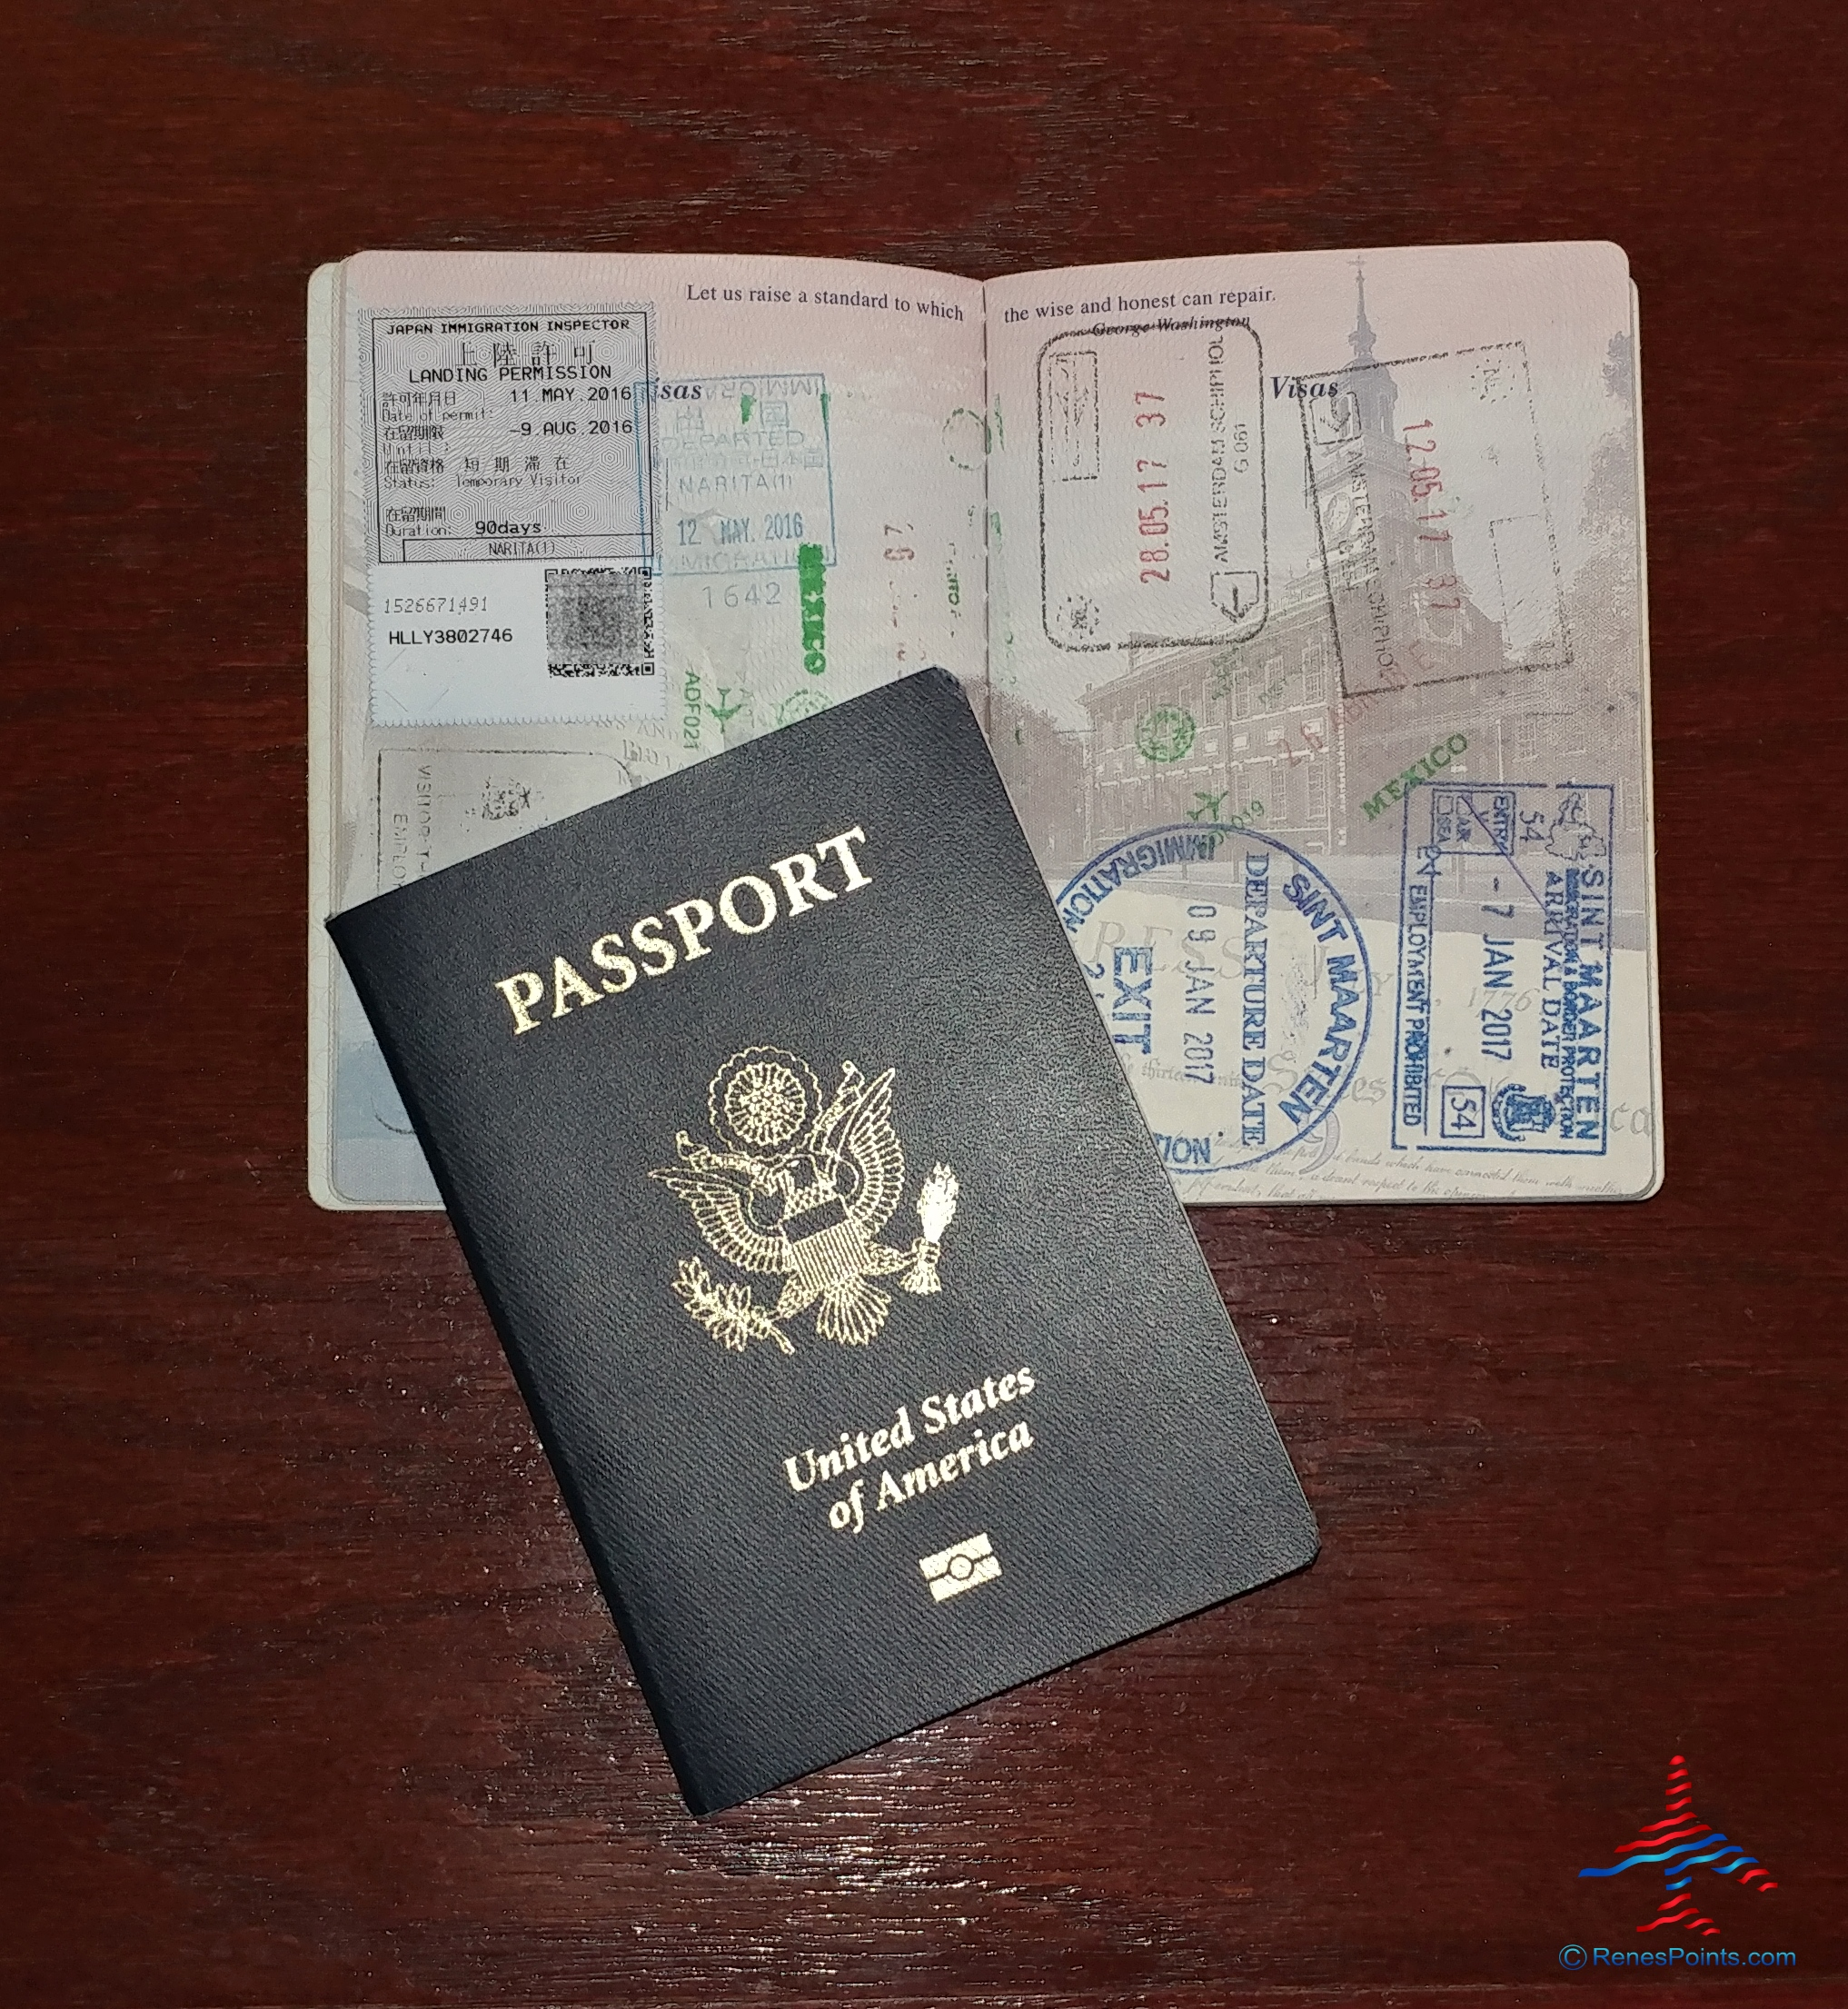 Rookie Wednesday: Can You Travel With a Damaged Passport? Just What Constitutes a Damaged Passport?